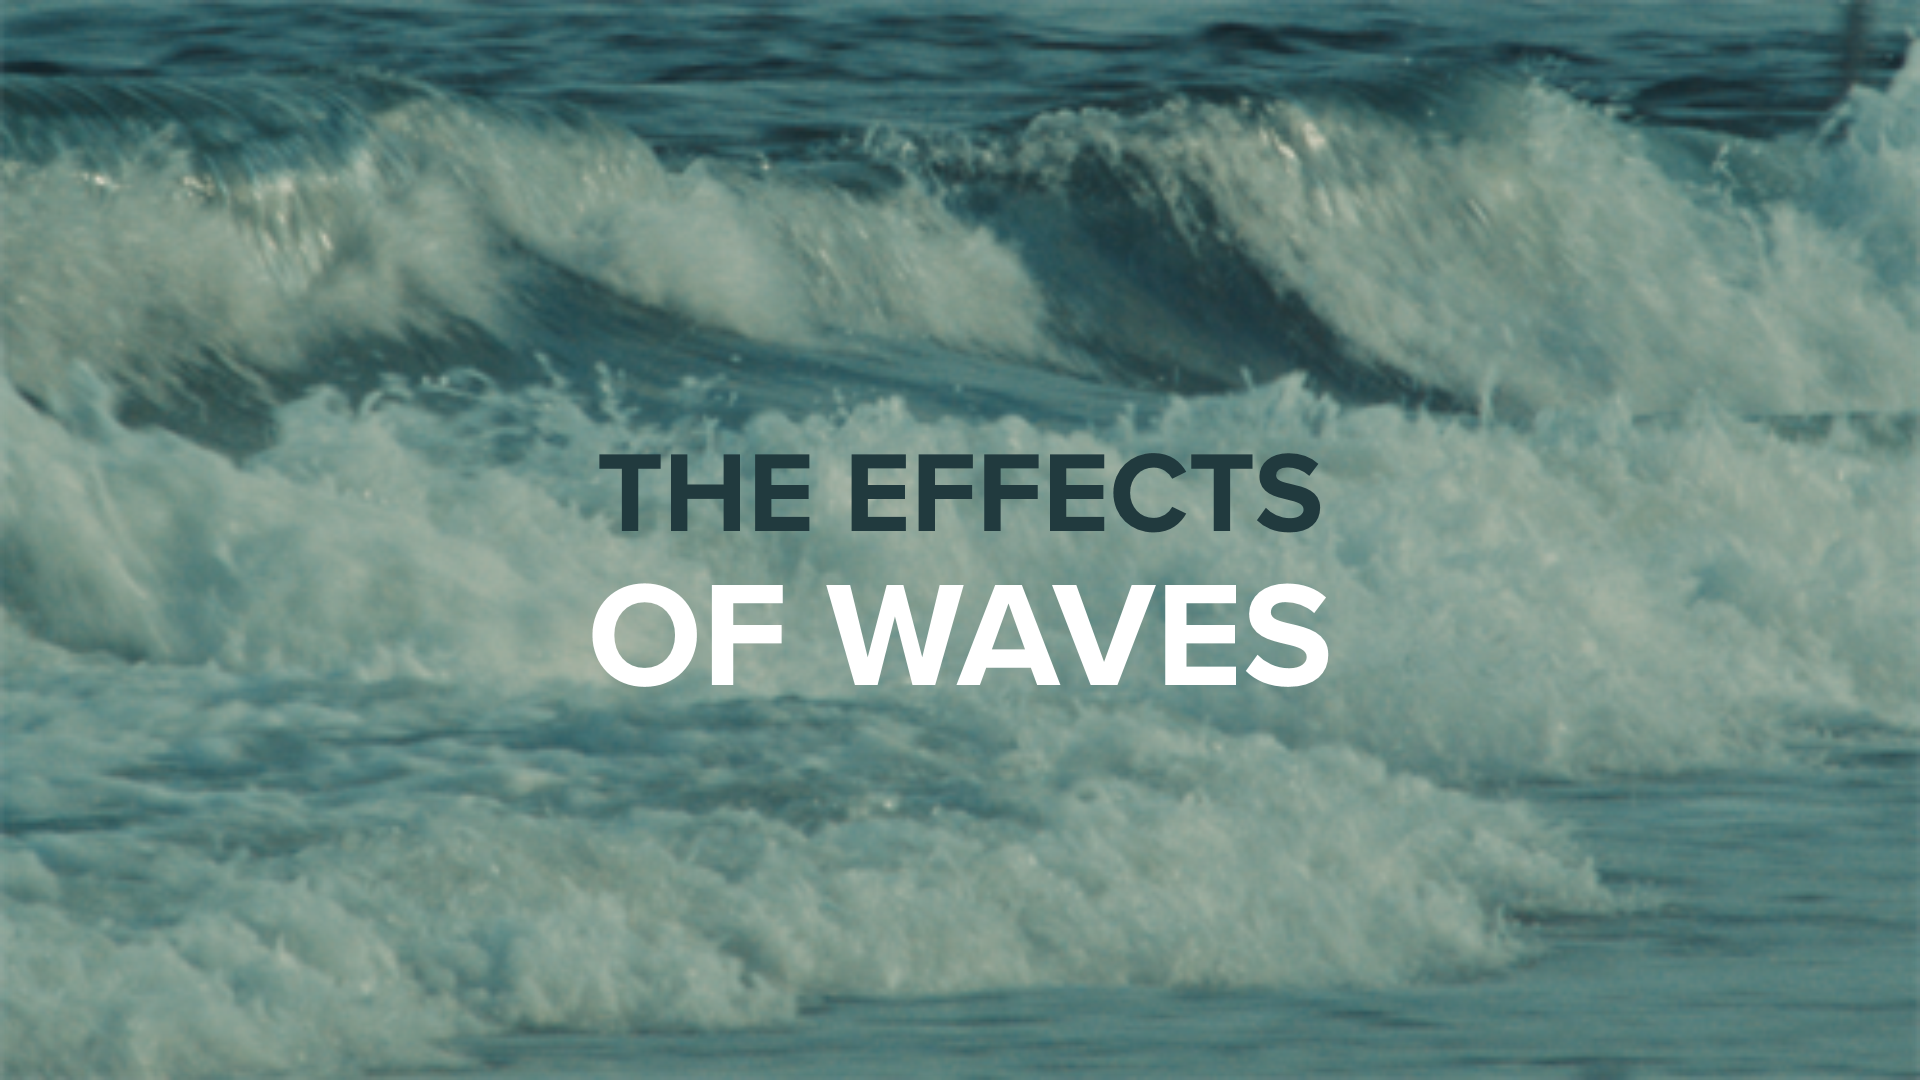 Waves_2.png